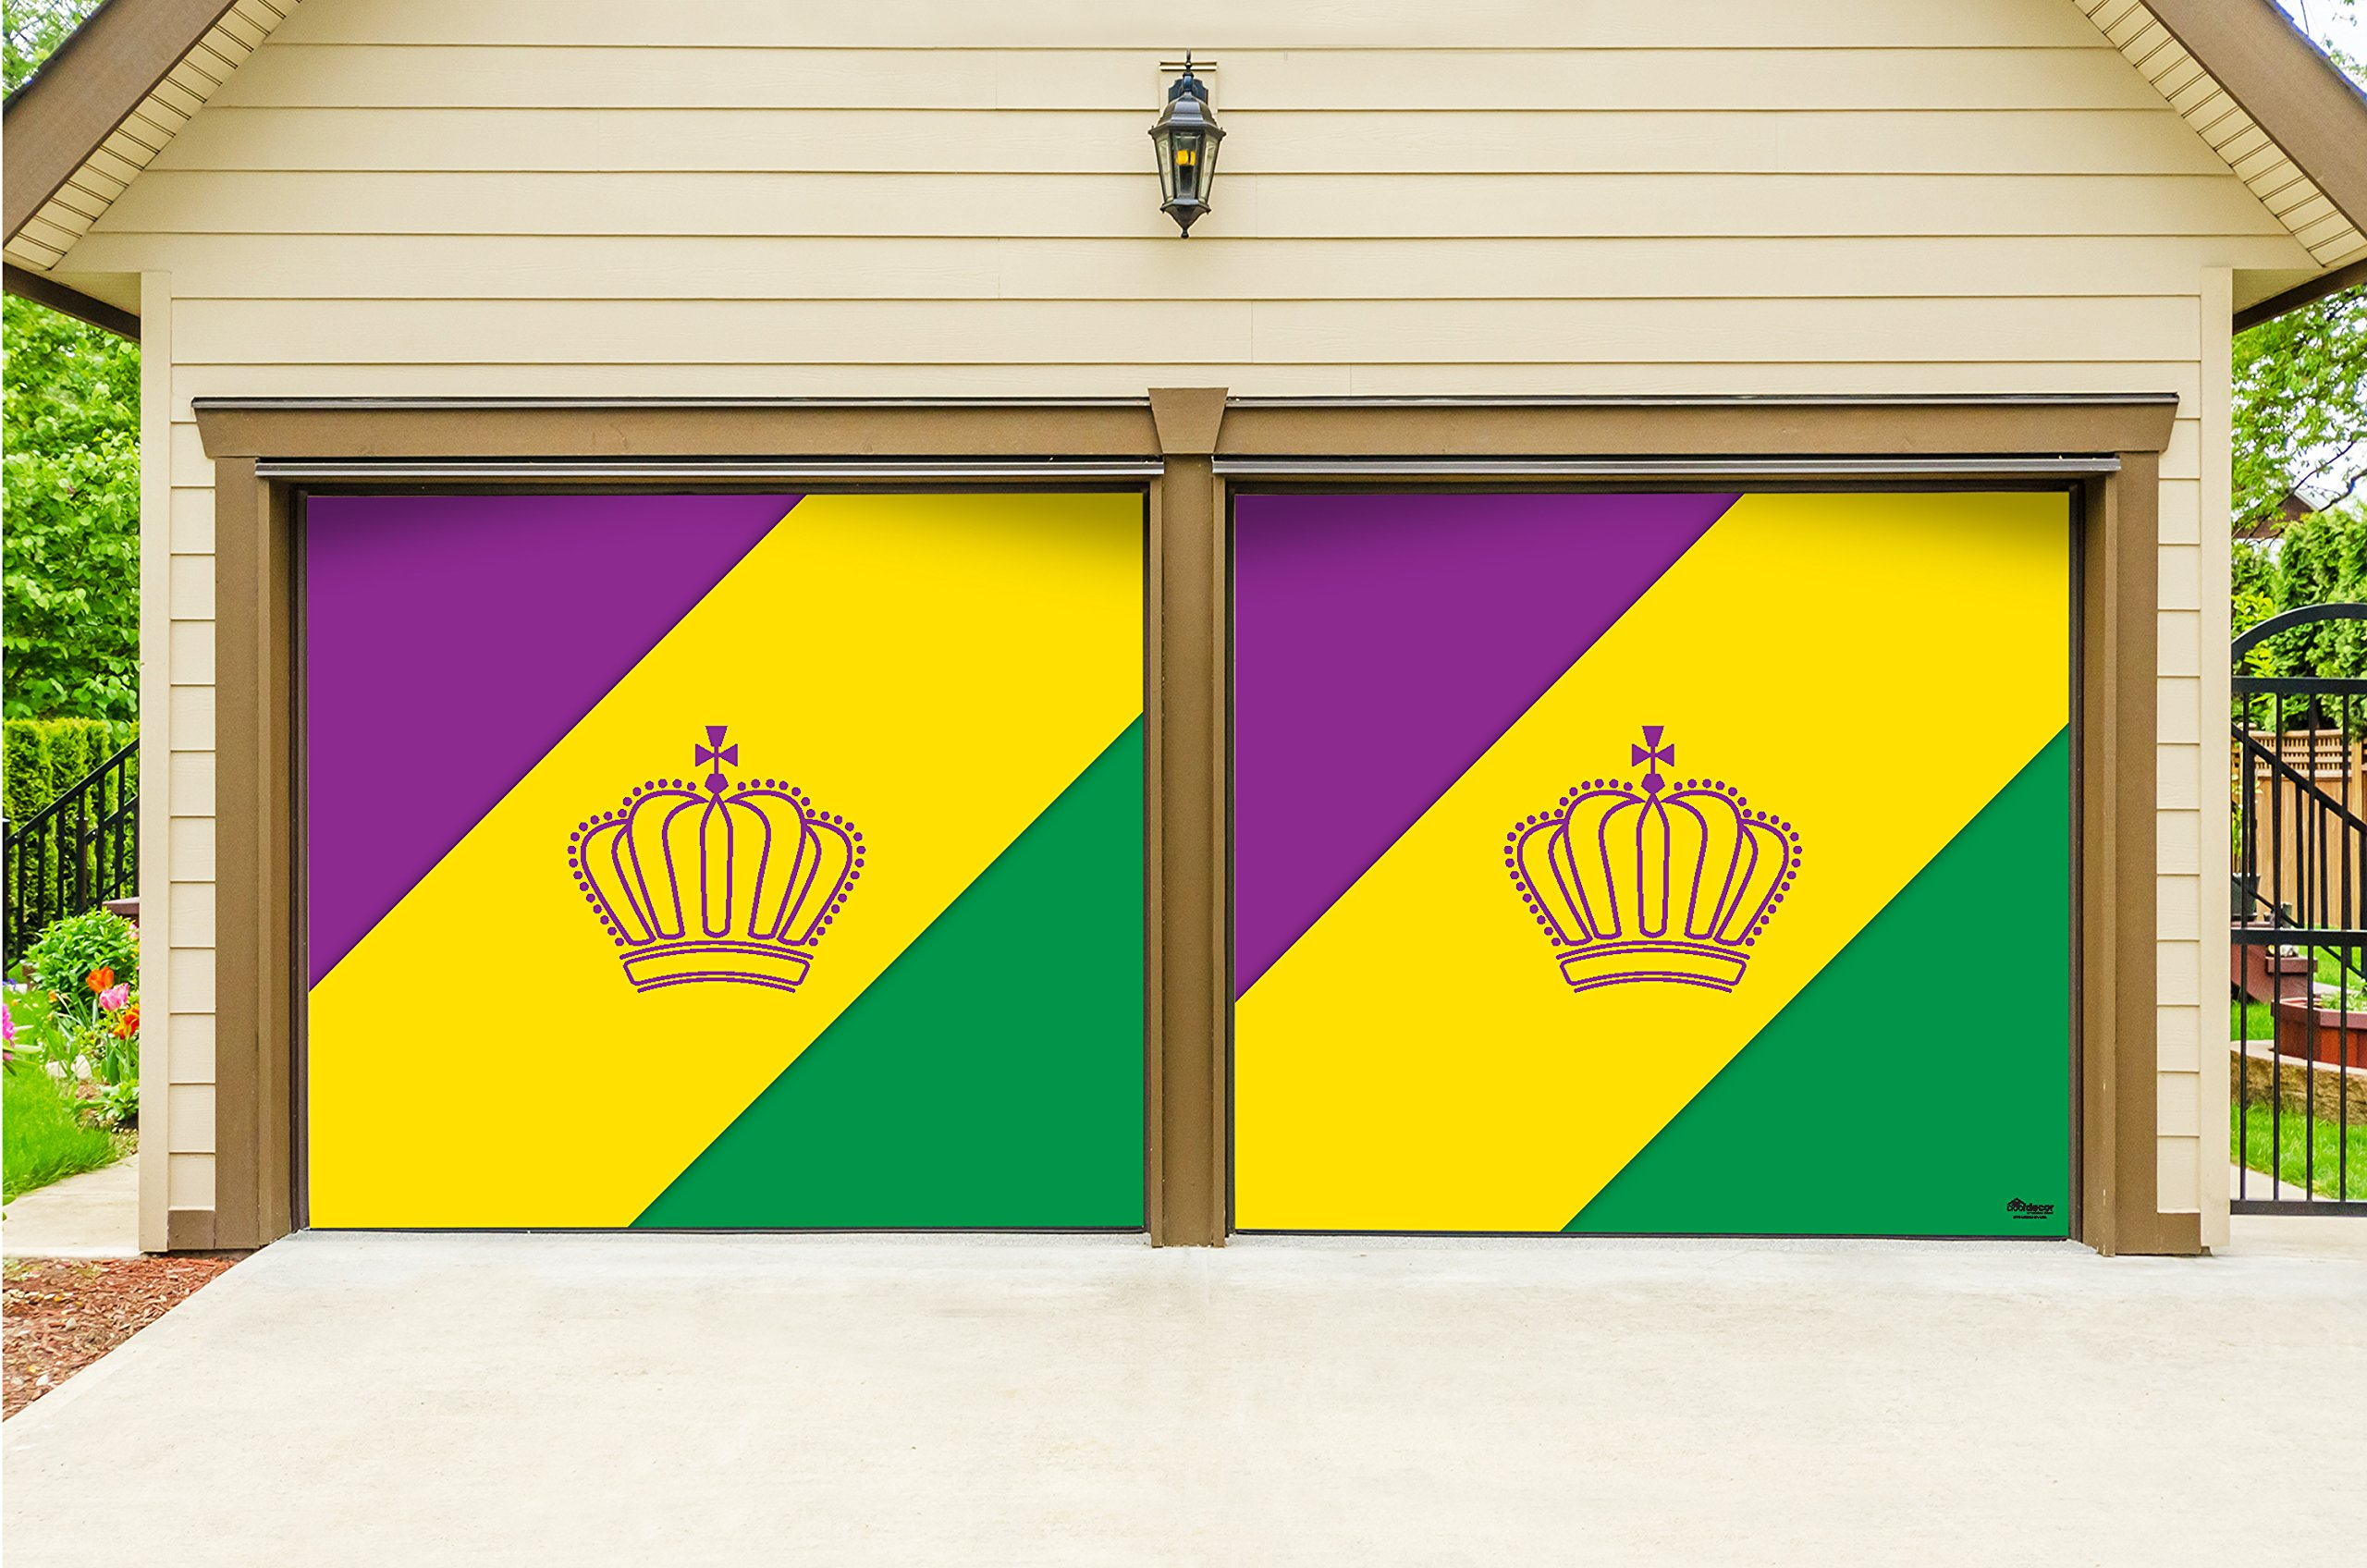 Outdoor Mardi Gras Decorations 2 Car Split Garage Door Banner Cover Mural - Mardi Gras Diagonal Stripes, Two 7'x 8' Graphic Kits - ''The Original Mardi Gras Supplies Garage Door Banner Decor''